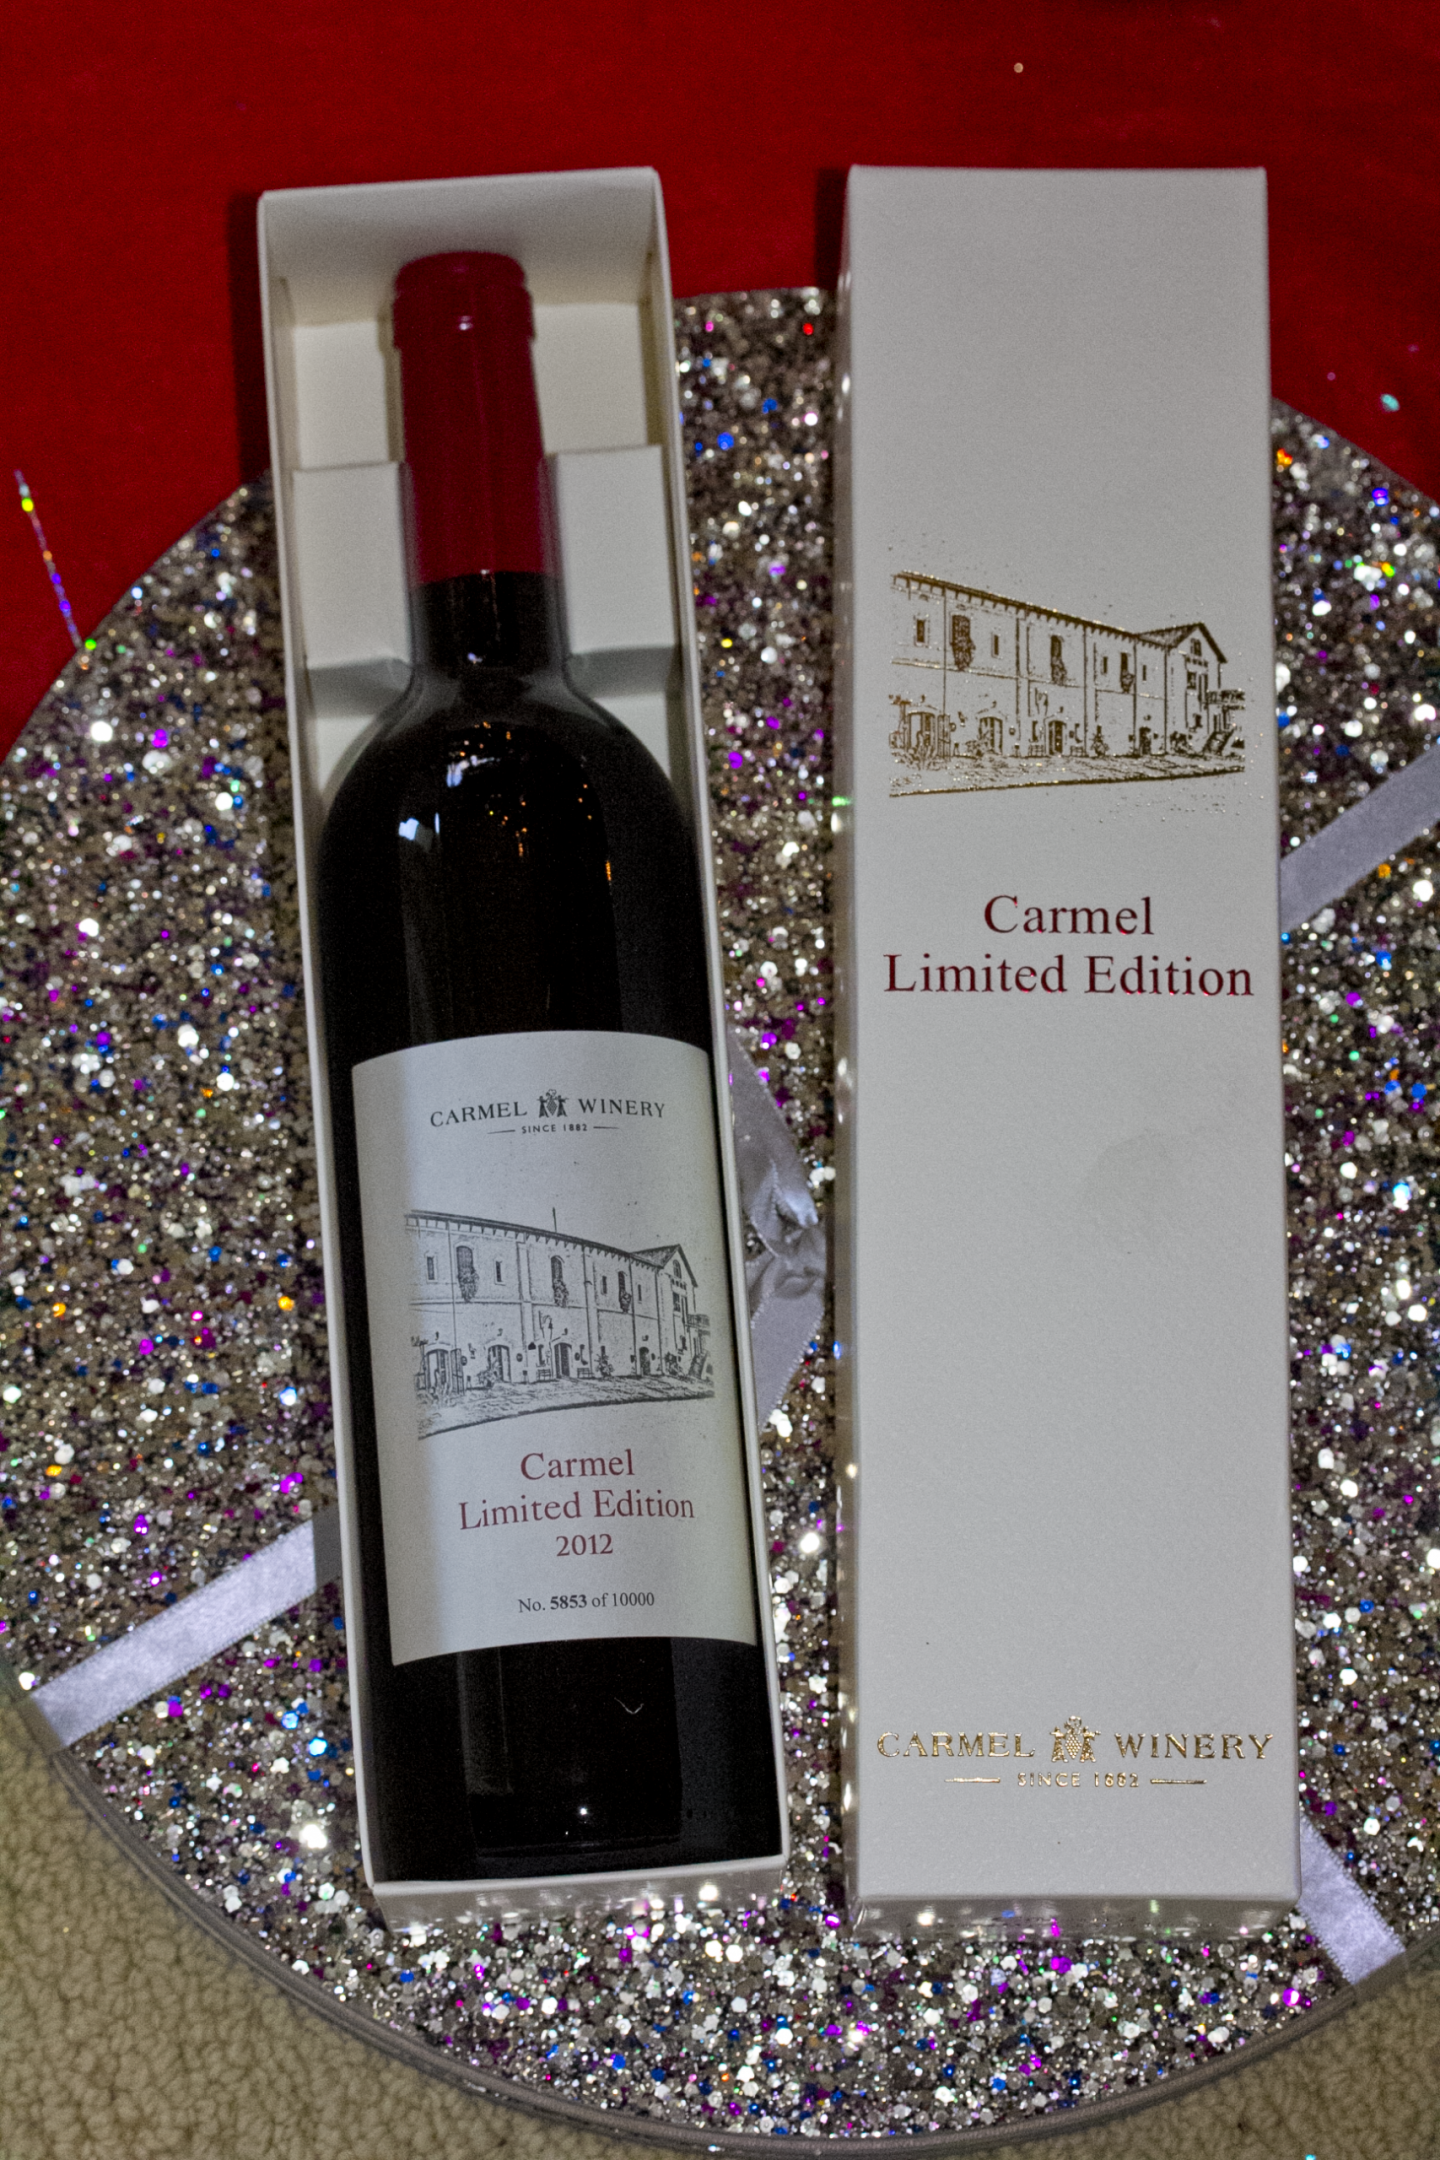 Carmel Winery Limite Edition 2012 wine holiday gift guide